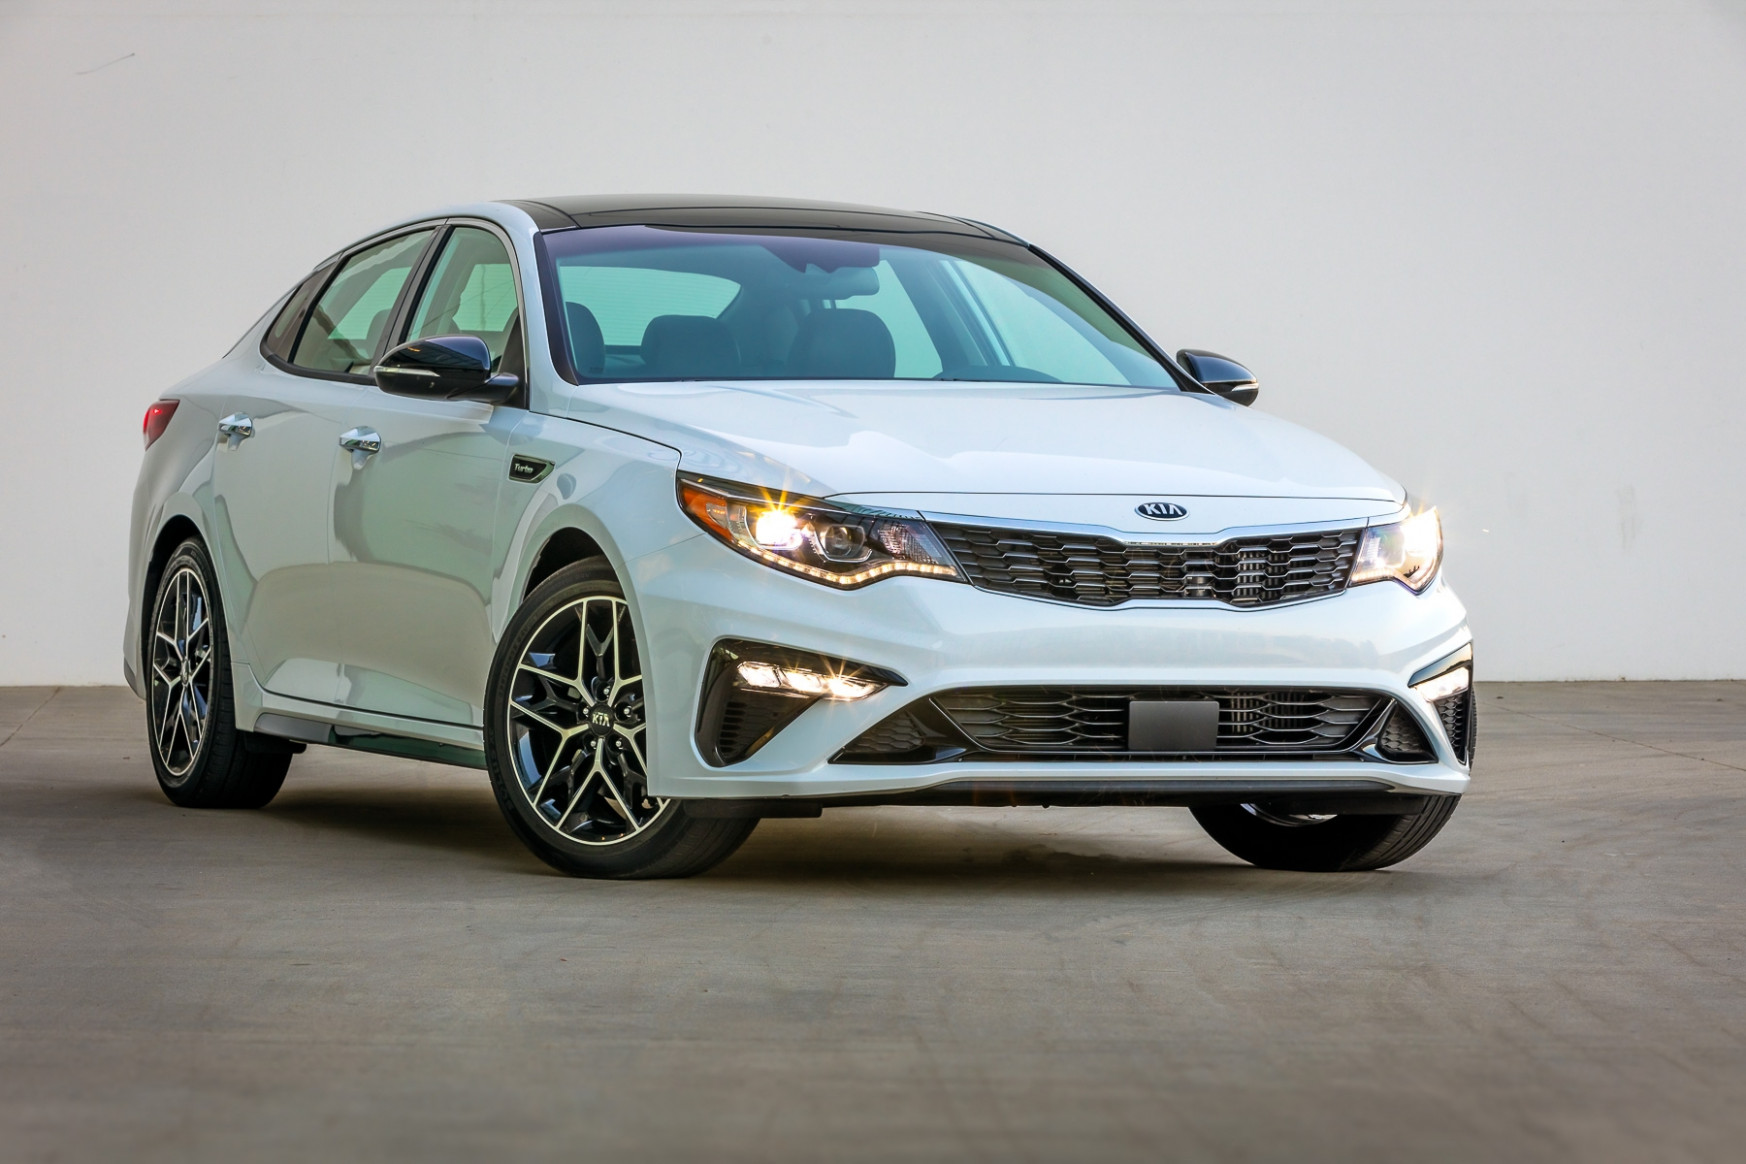 Kia Optima 10 Price In Qatar | Specs, Price, Interior, Release Date - kia optima 2020 price in qatar